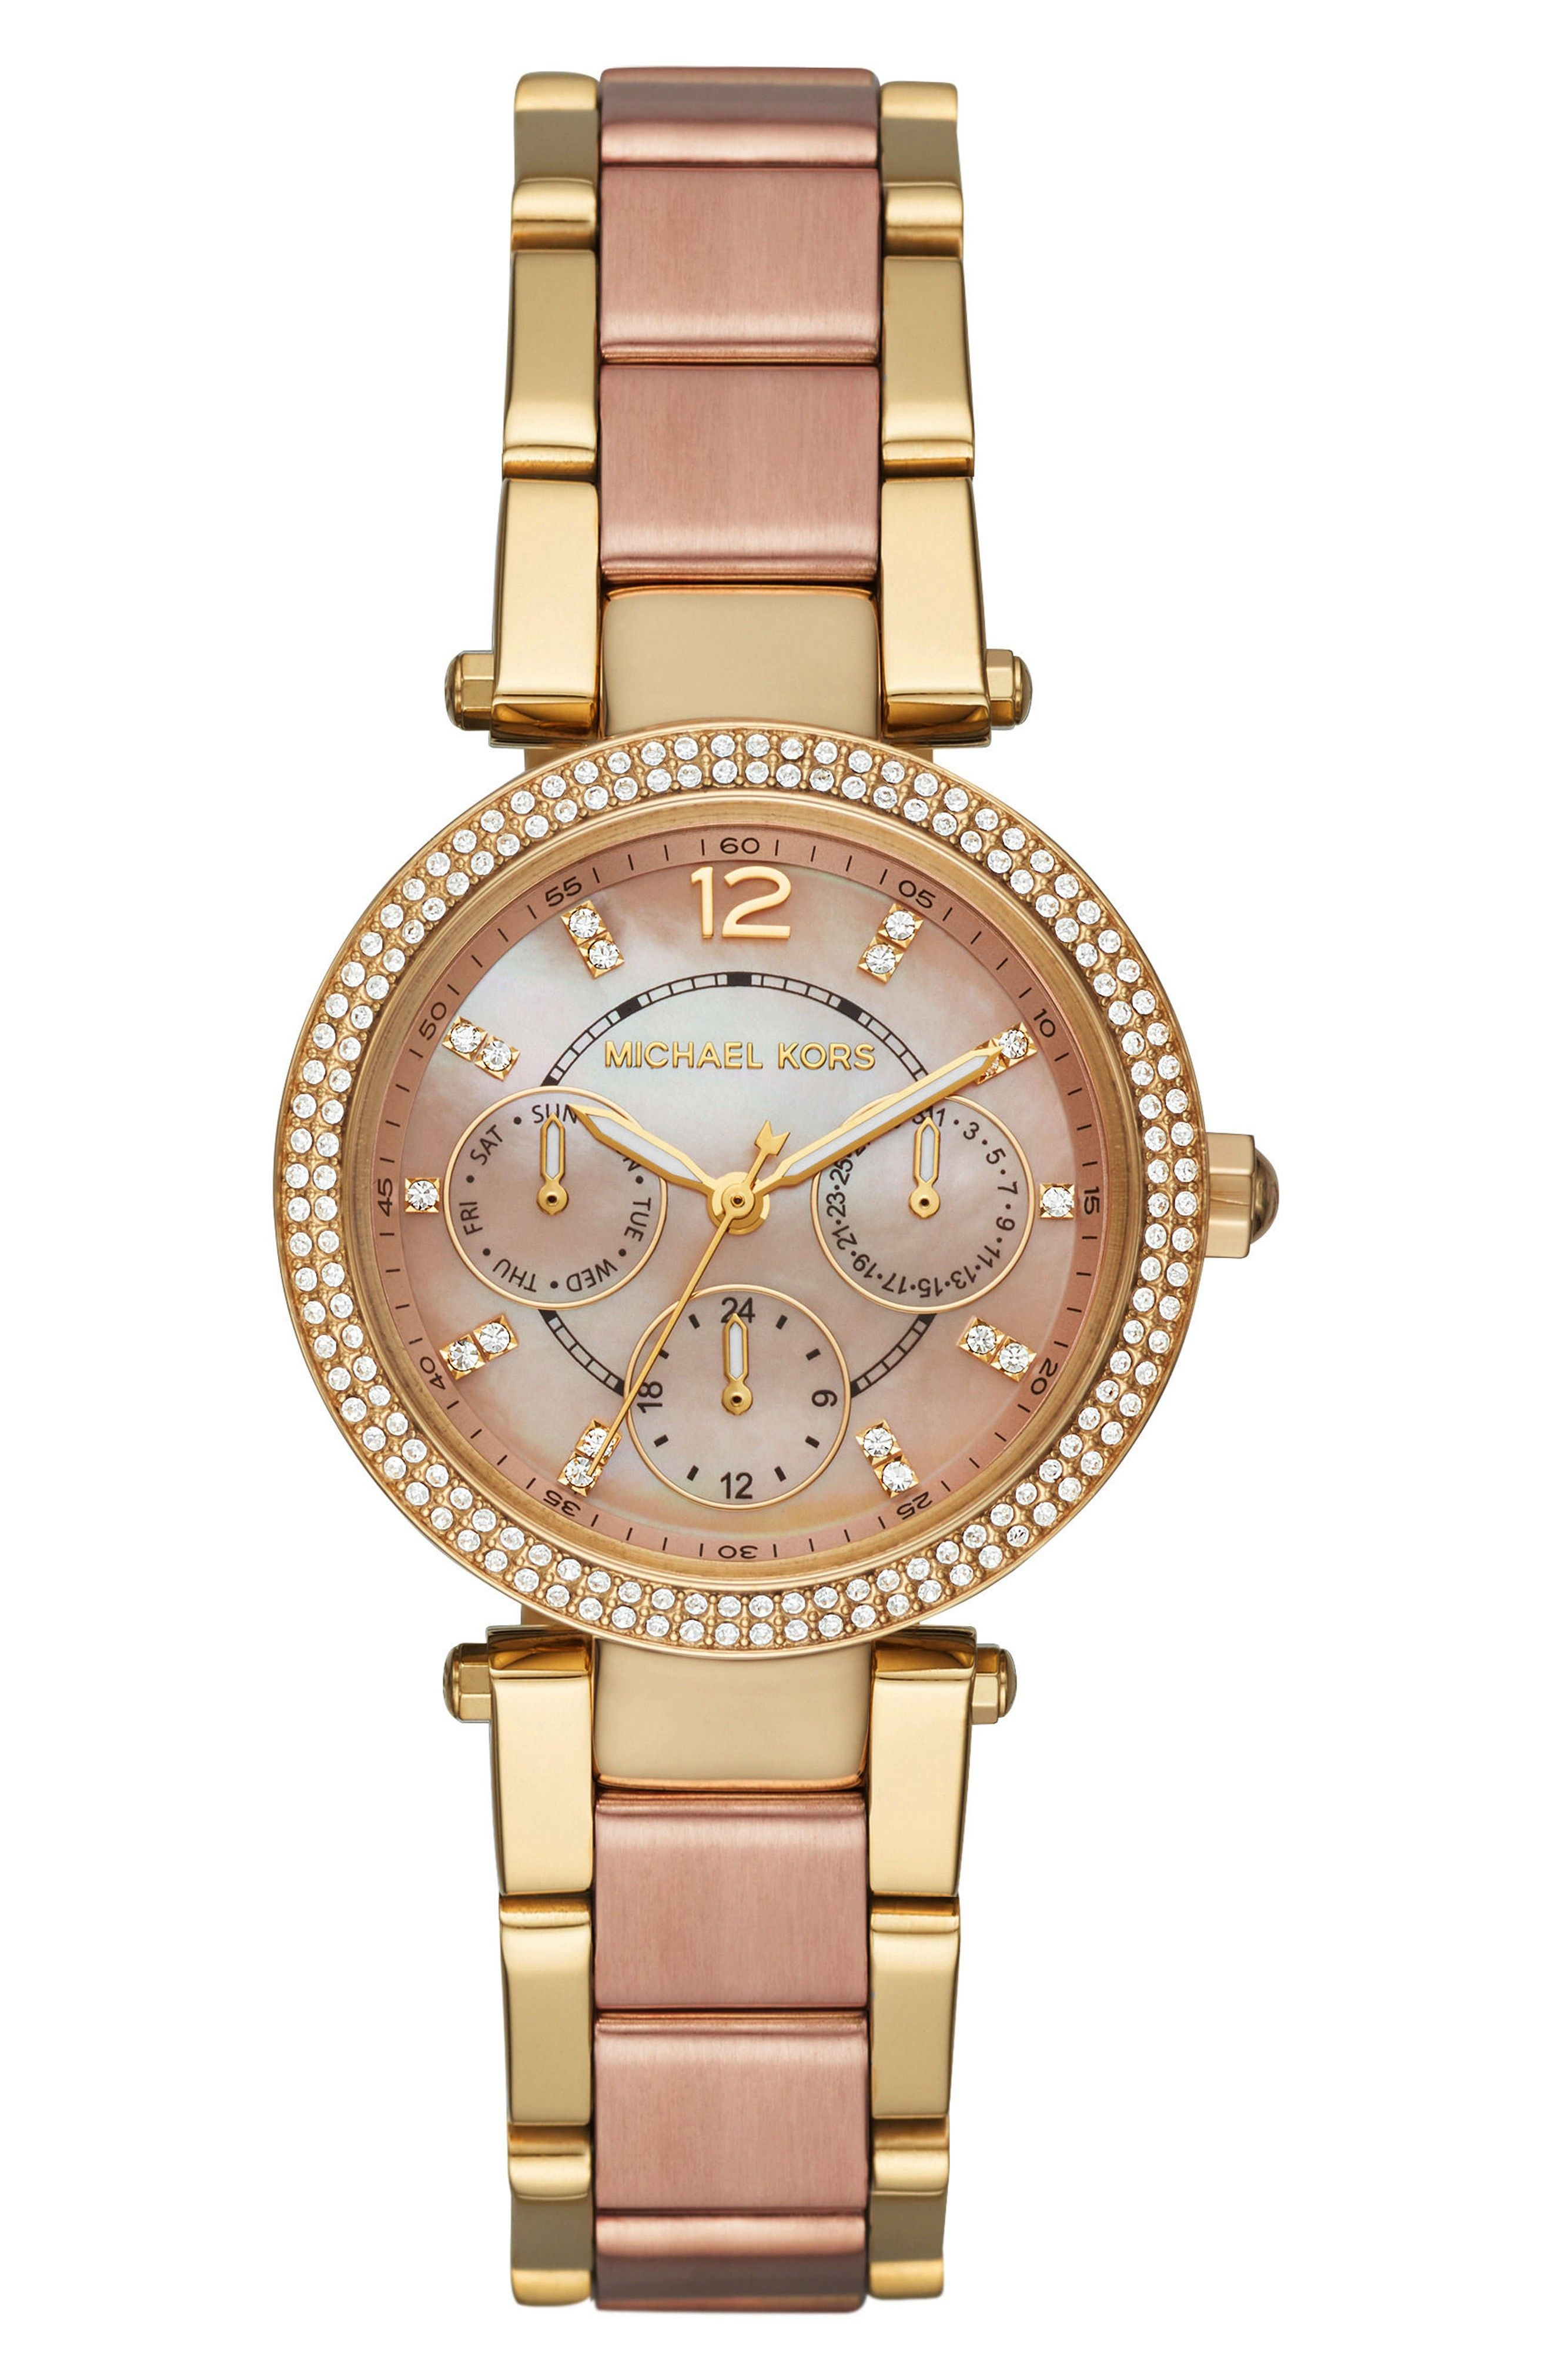 Thought To Get R A Watch For Her Birthday I Was Randomly Thinking A Grey Rose Gold One Micheal Kors Watch Watches Women Michael Kors Handbags Michael Kors